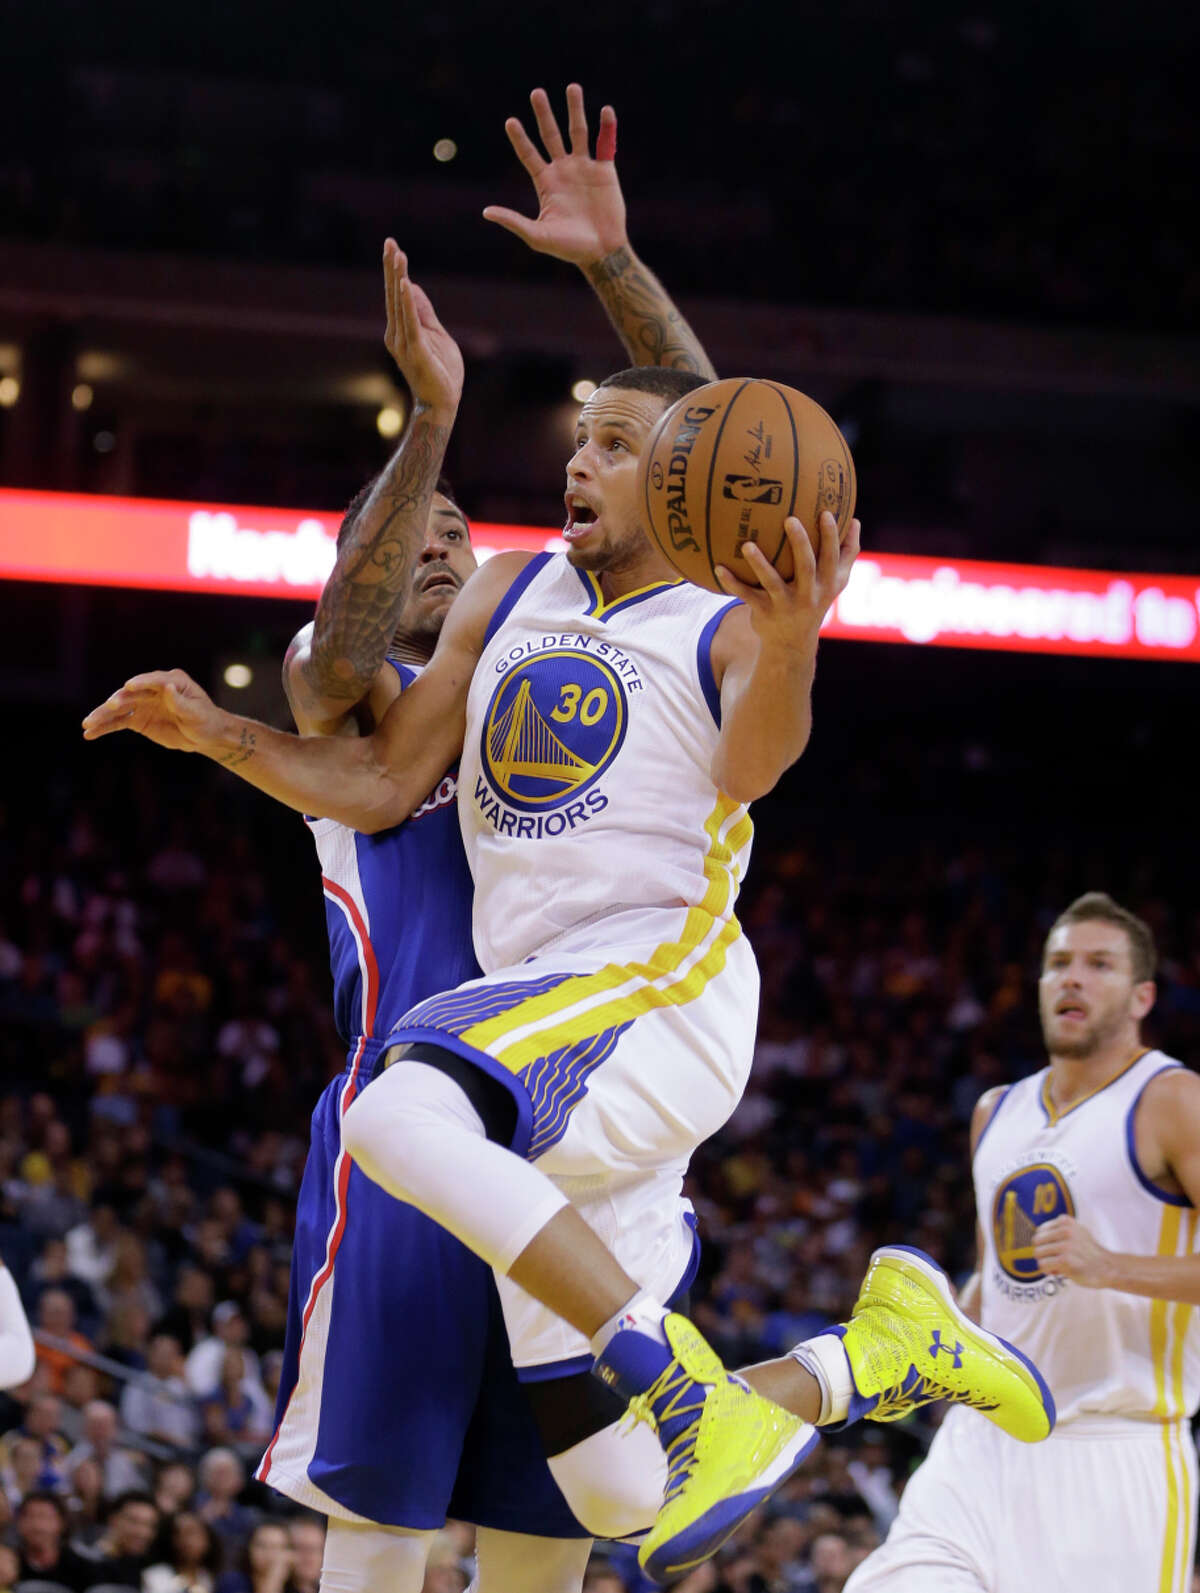 General managers labeled Stephen Curry the NBA's best pure shooter and lauded his point guard skills, court IQ and more.